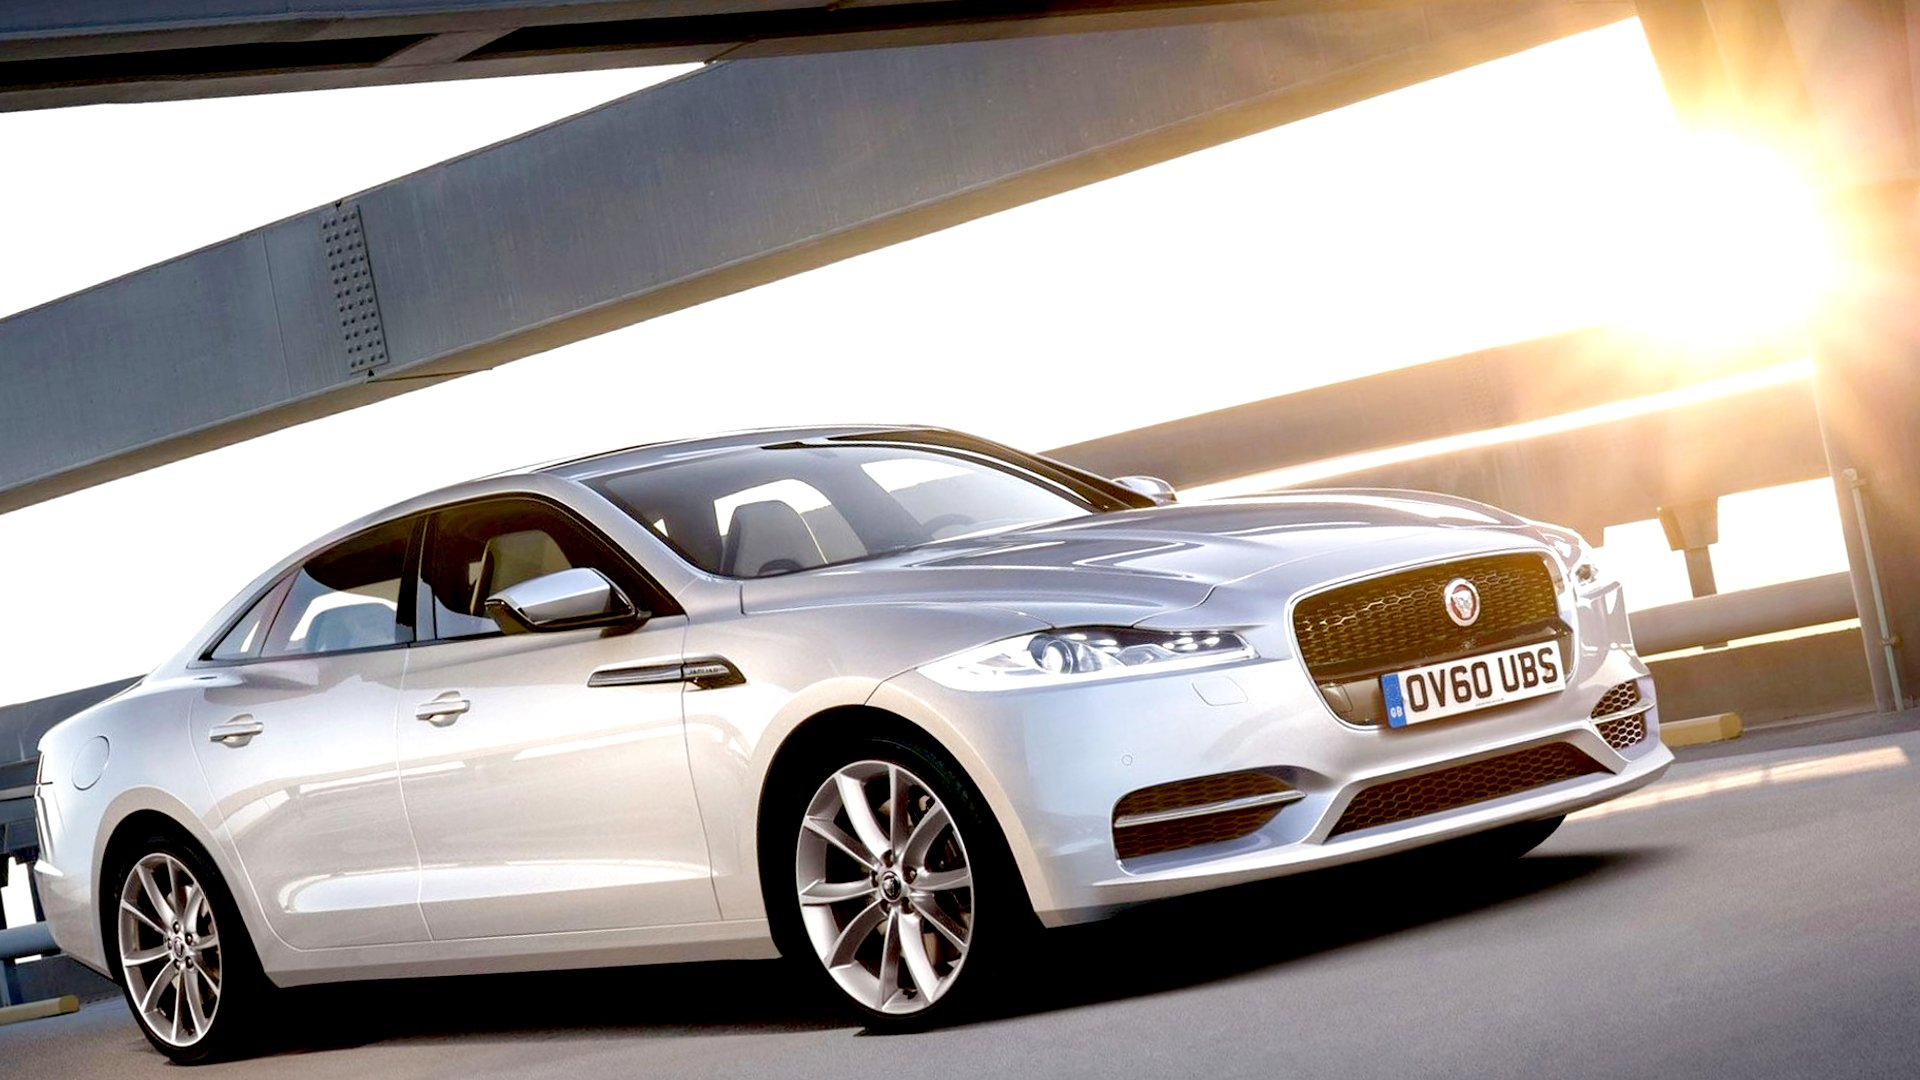 New 2019 Jaguar XE First Pictures